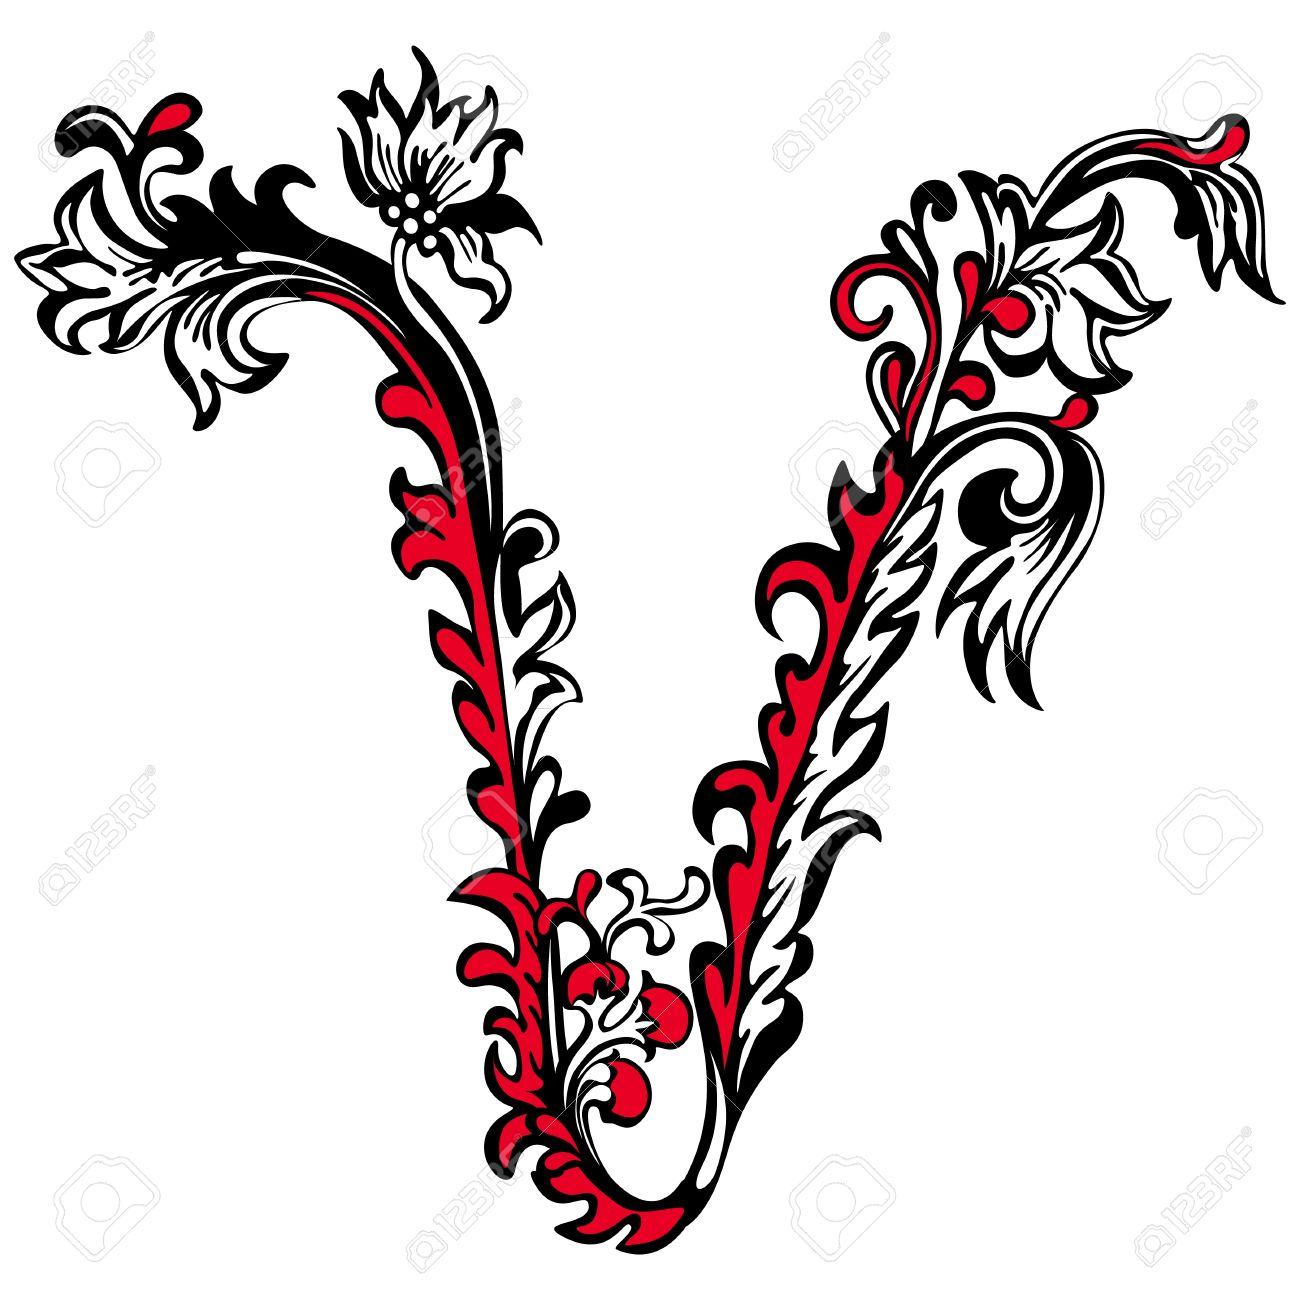 Letter V In Different Tattoo Styles 93126 Usbdata